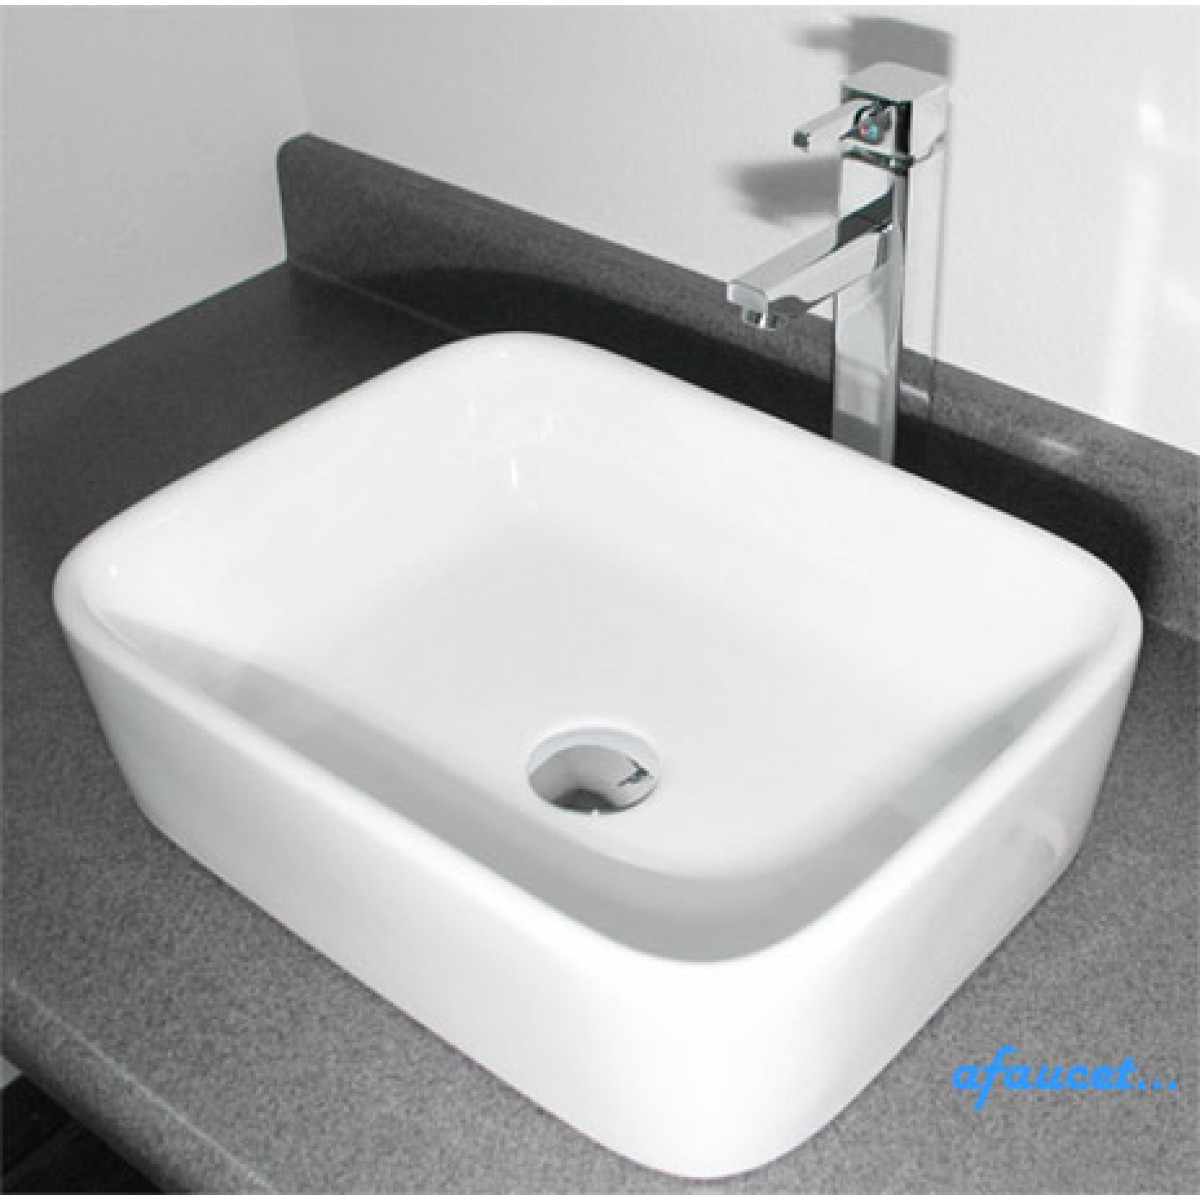 Rectangular White Porcelain Ceramic Countertop Bathroom Vessel Sink   19 X  14 1/2 X 5 1/4 Inch